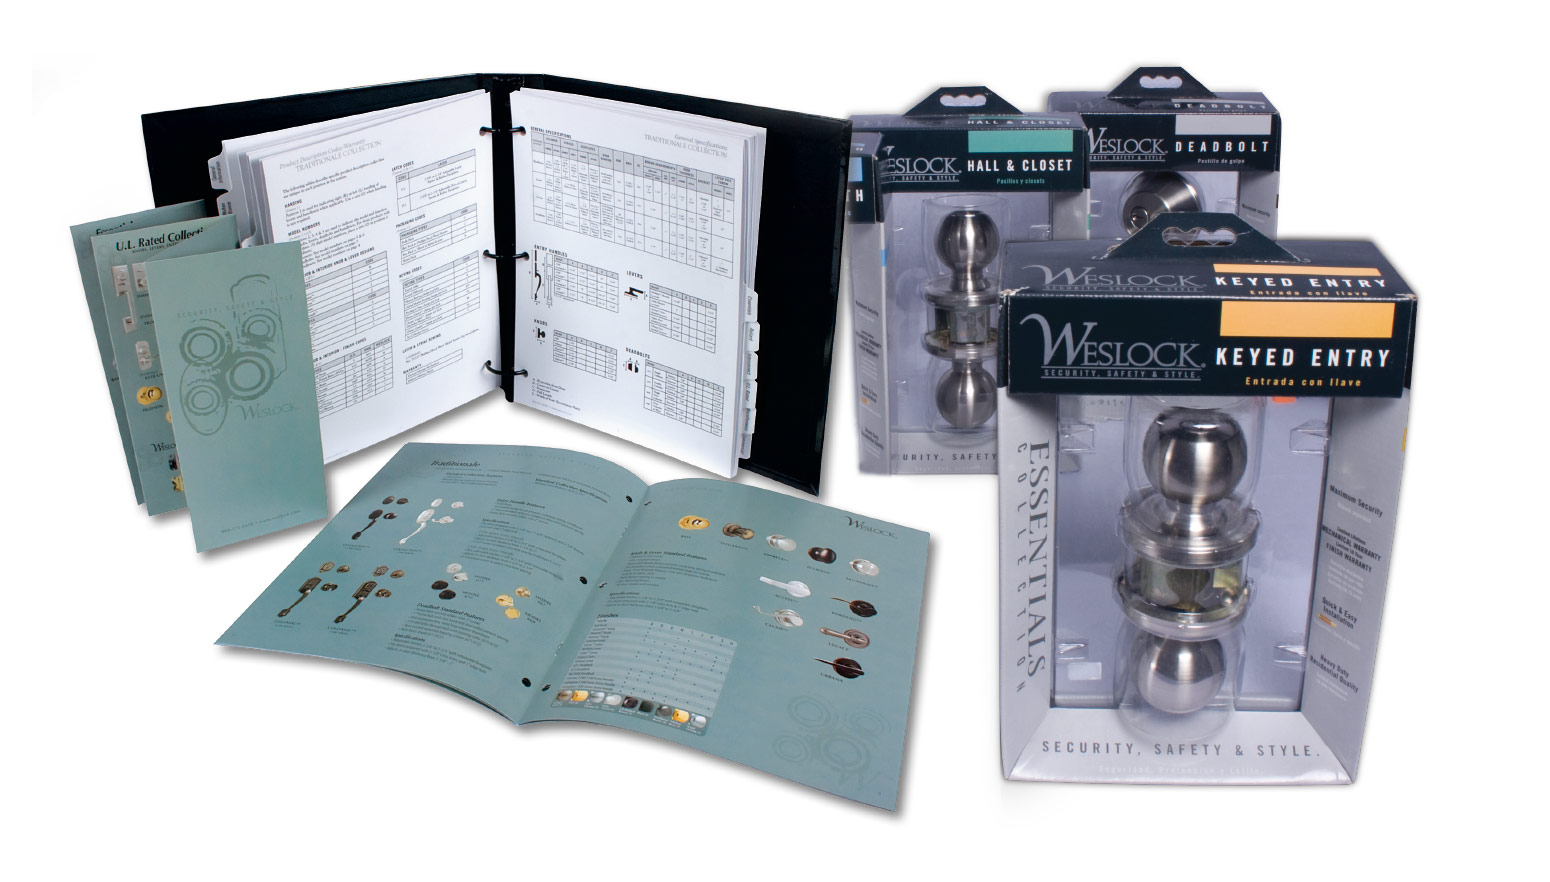 Weslock marketing materials and product catalog, packaging